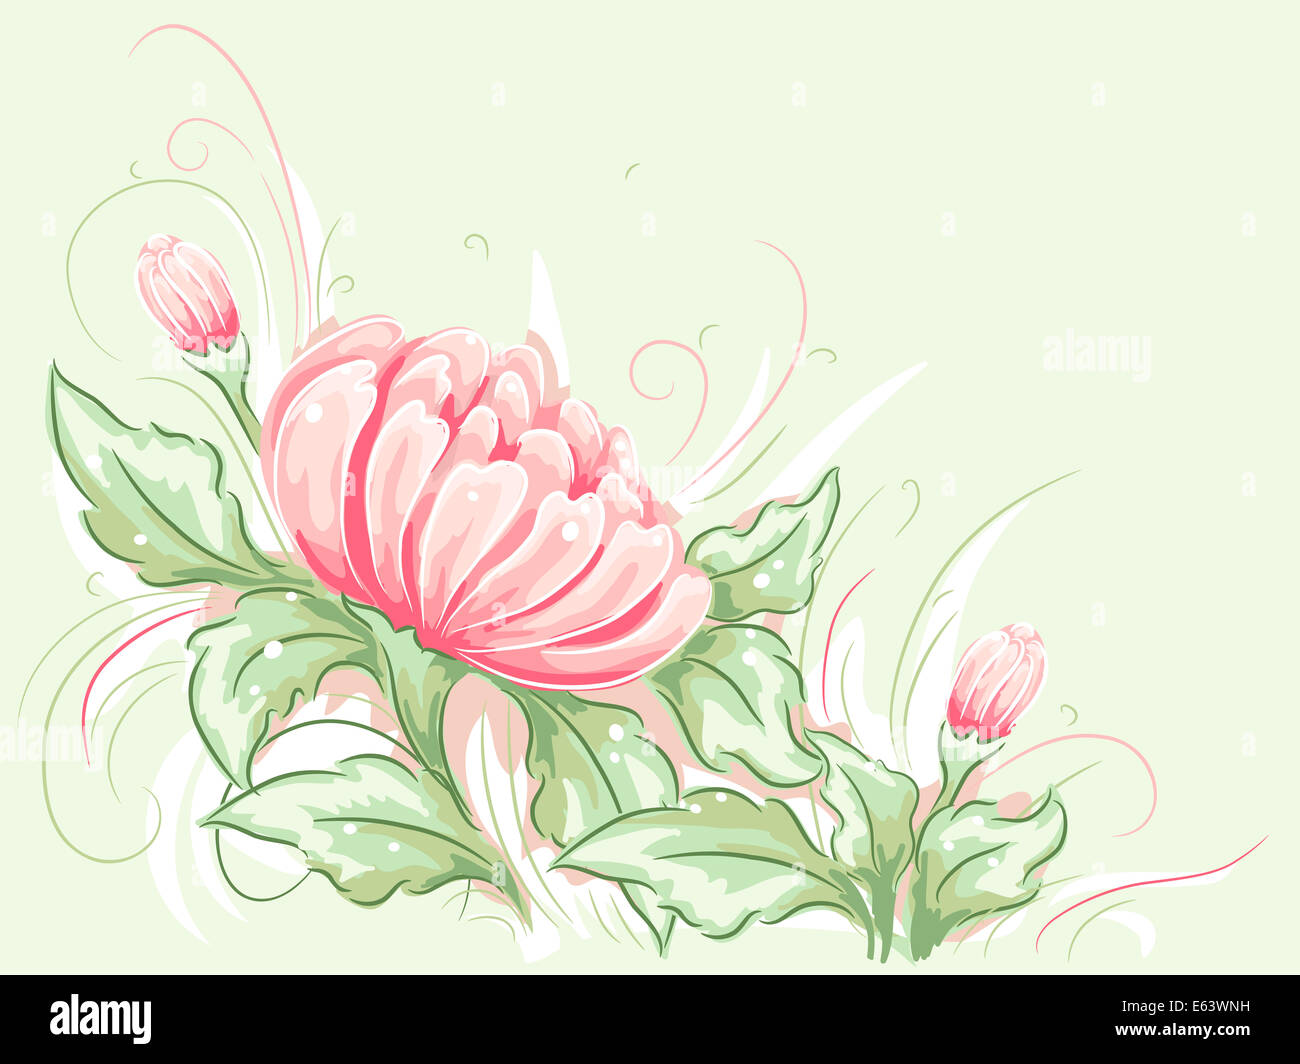 Shabby Chic Themed Illustration Featuring Floral Border Stock